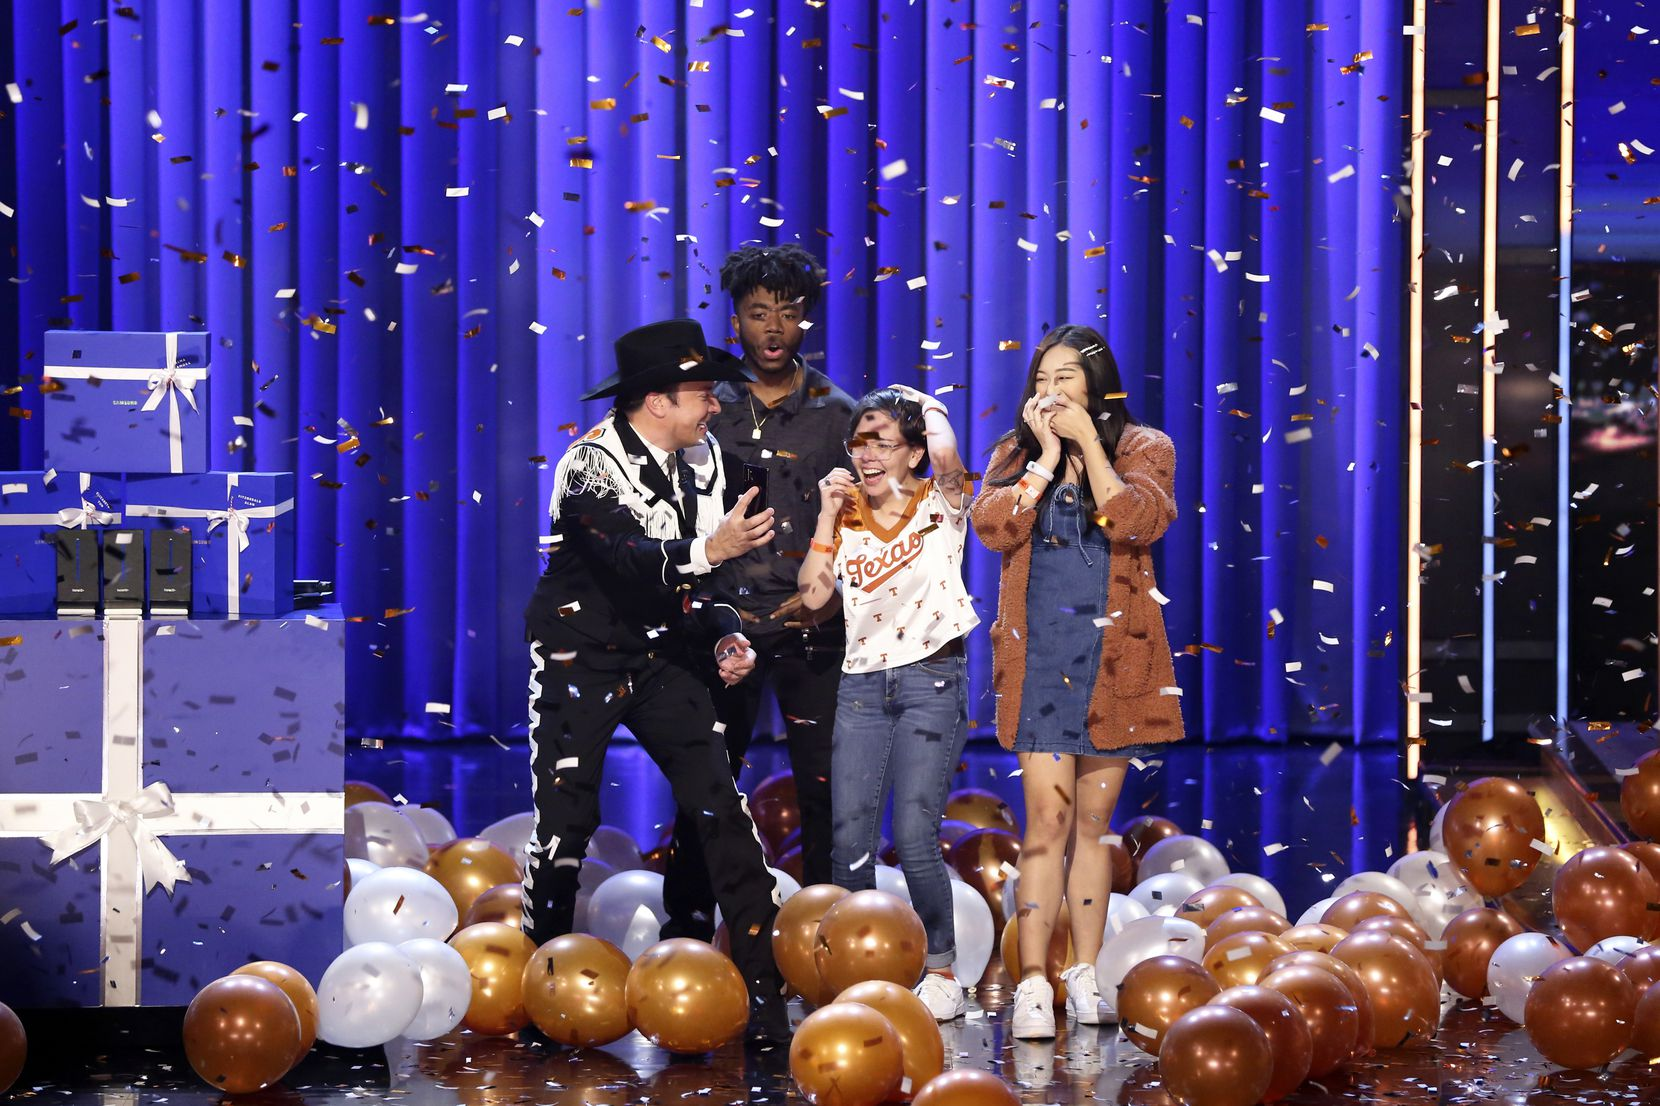 At a taping on Nov. 7, 2019, host Jimmy Fallon told UT Austin students Fitzgerald Alan, Alma Zamora and Elizabeth Yoon that they'd have their college tuition paid for. He also appeared to be wearing a black version of the Longhorn Band uniform.